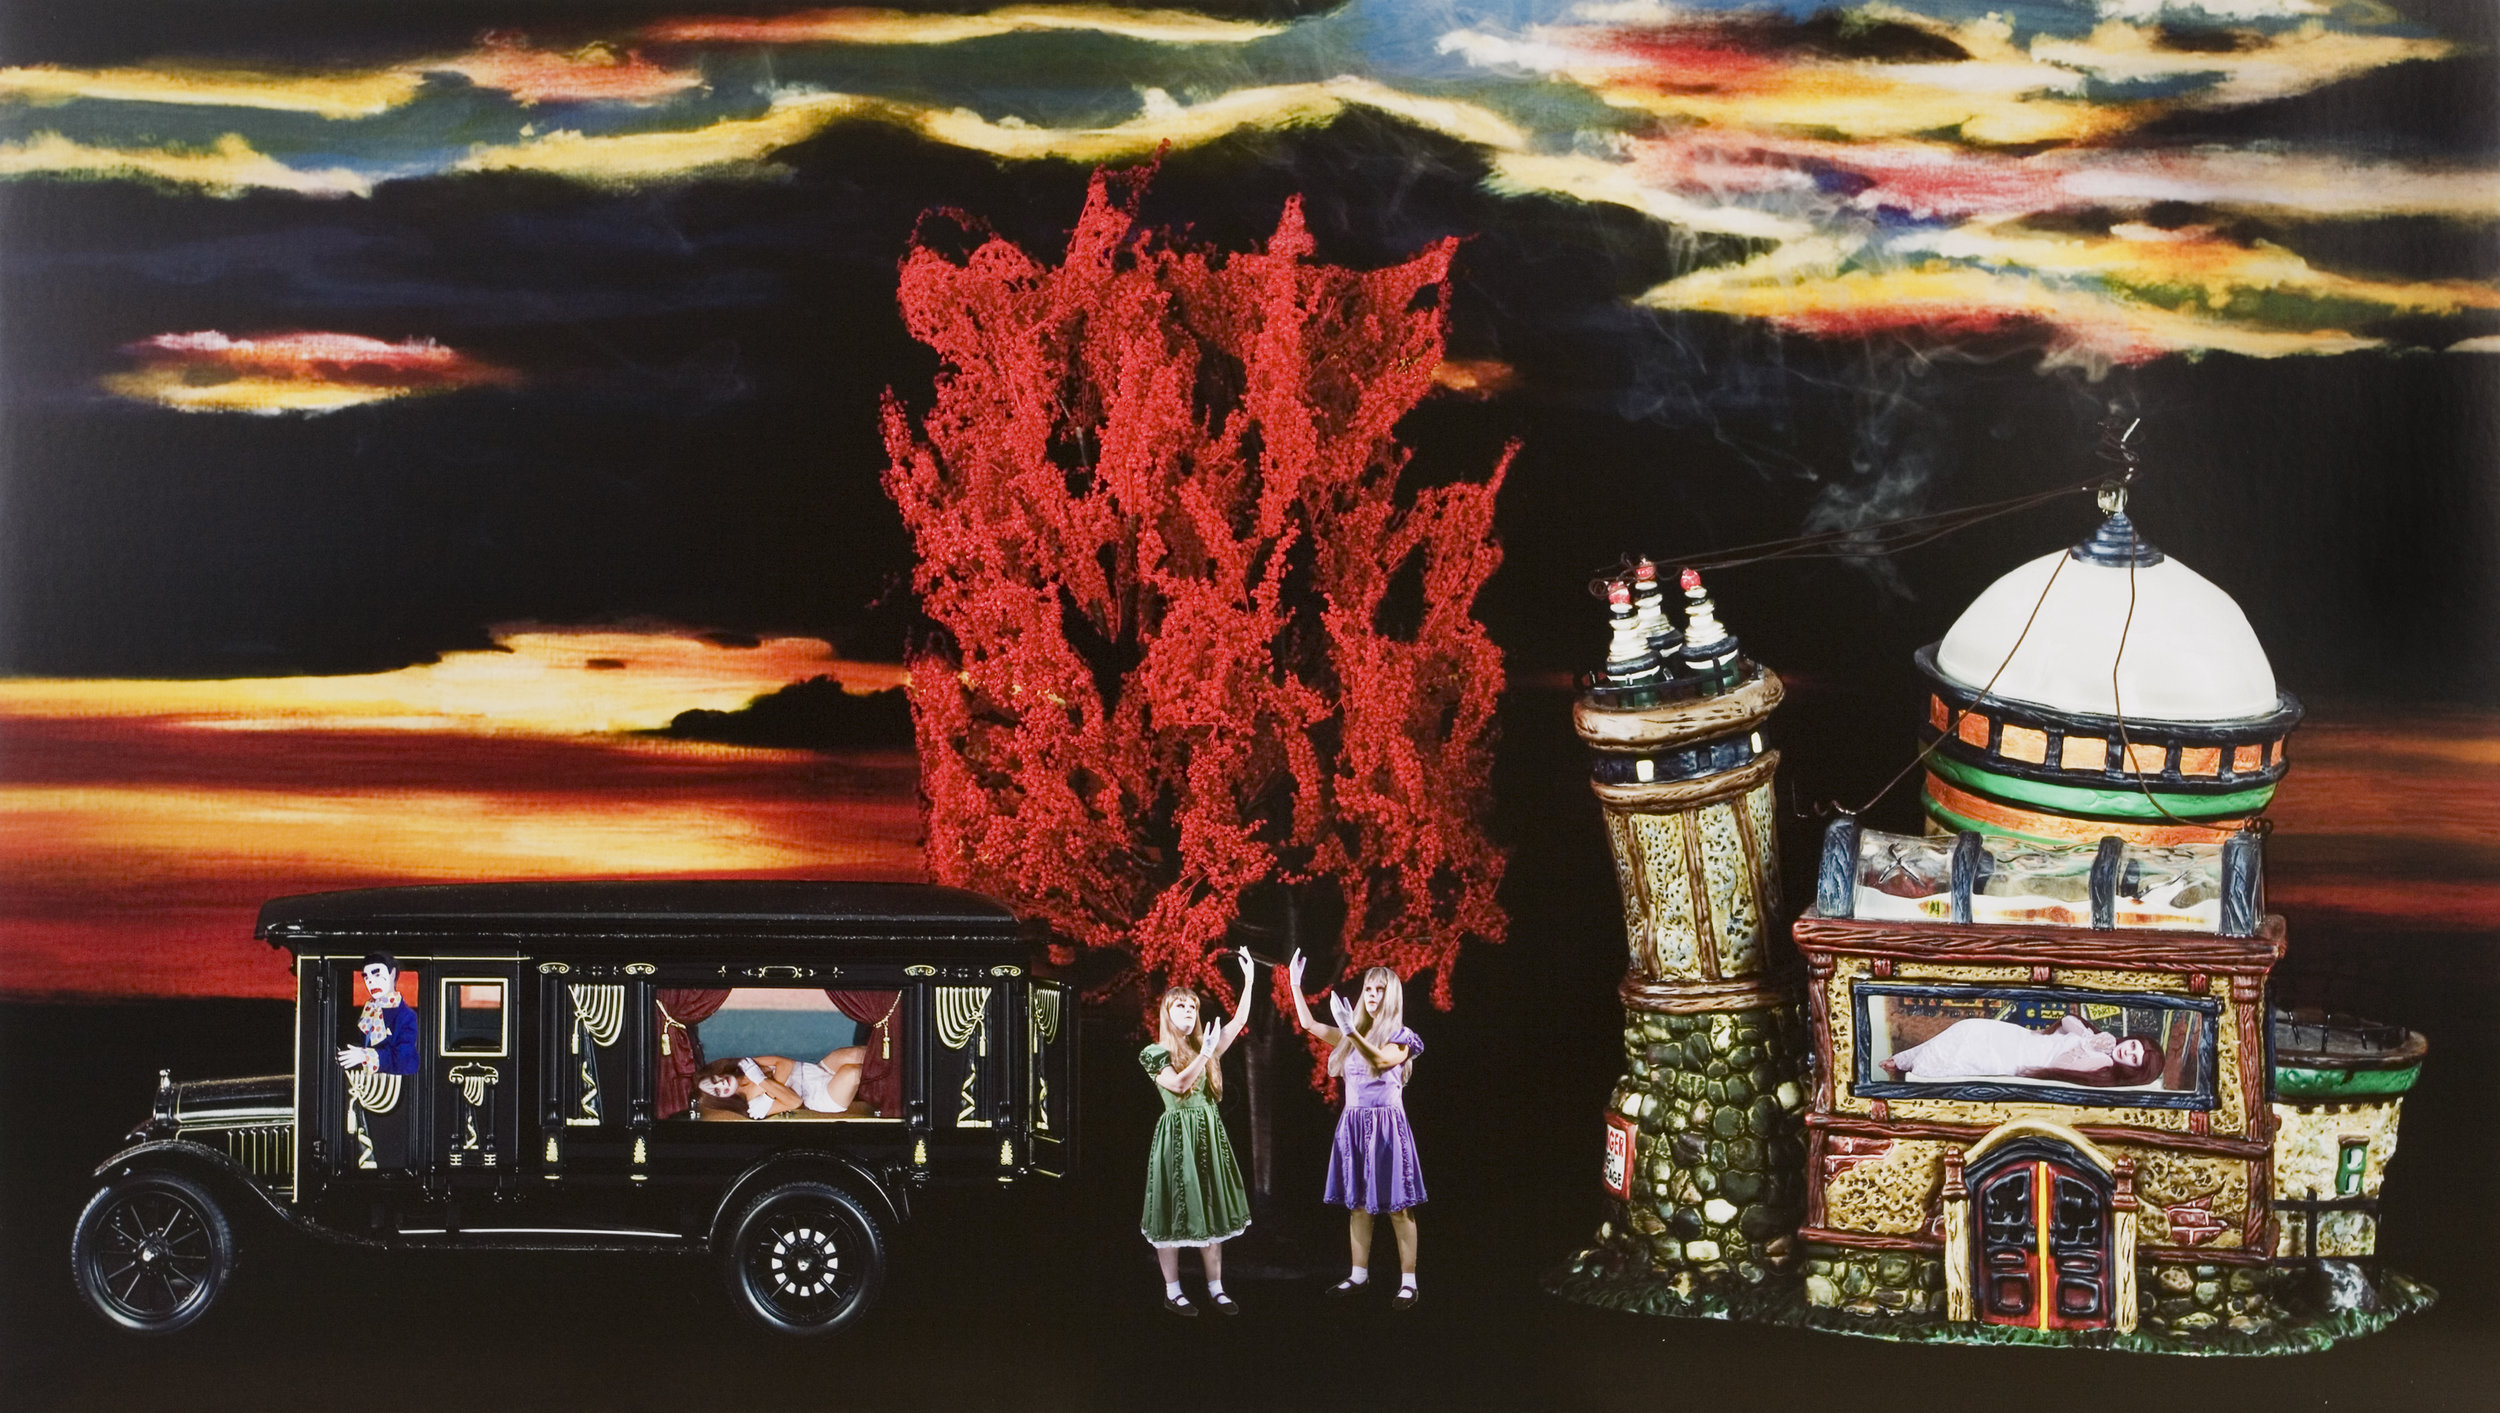 Marnie Weber, Transformation by The Tree of Fire, 2008 collage on archival pigment print mounted on Sintra 71 x 124 cm - 28 x 49 inches (framed)